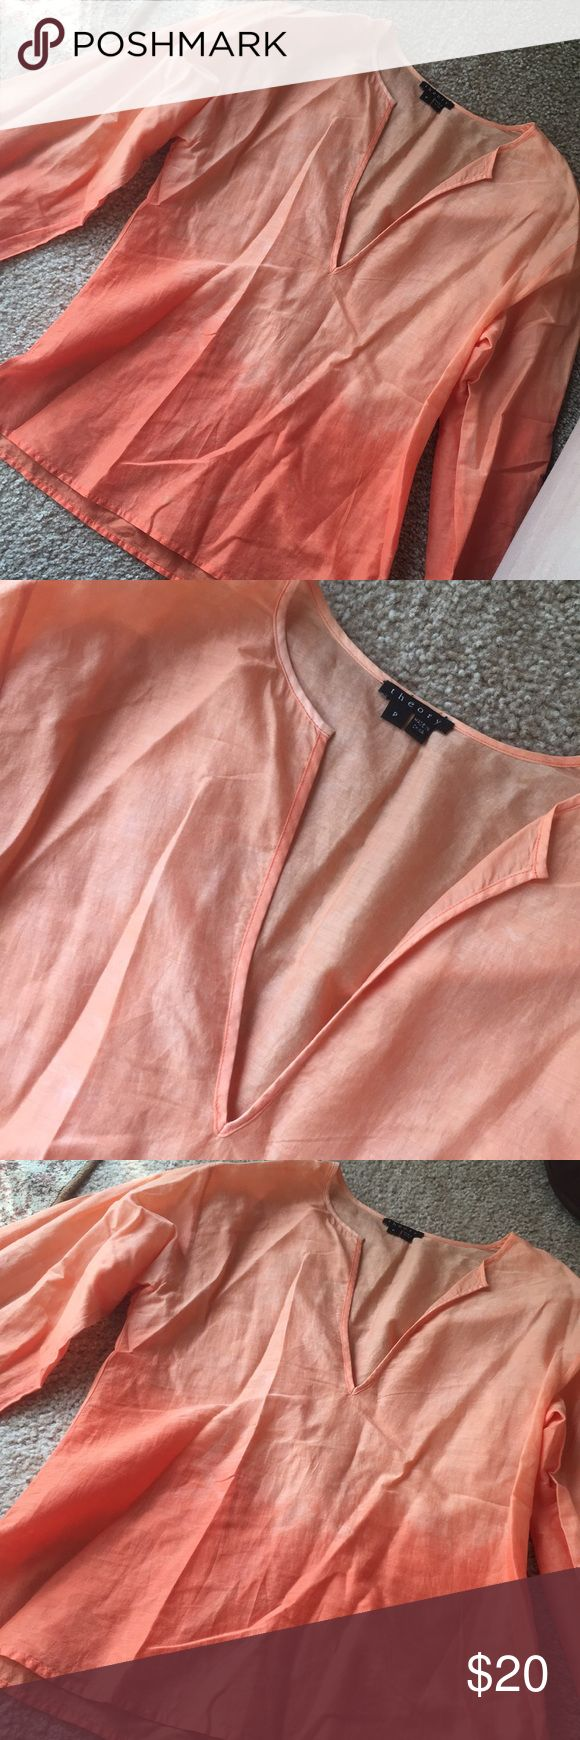 Theory Top Amazing condition ...unique colors. Size petite ..fits like a small. Check out my theory orange jacket that matches with this shirt! Bundle both for 15% off! Theory Tops